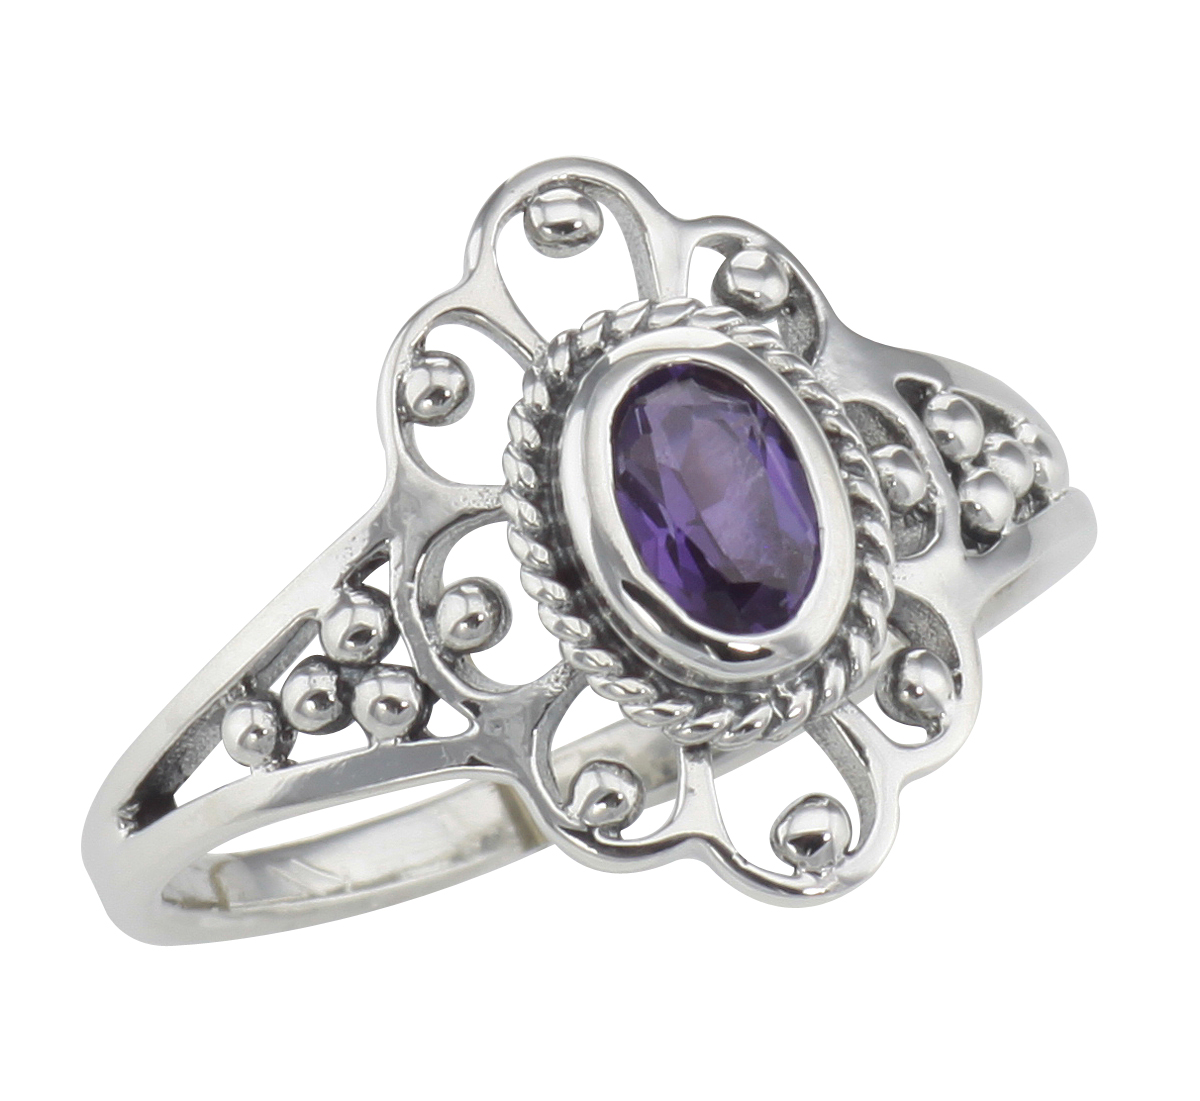 Stunning Vintage Sterling Silver and Amethyst Ring.